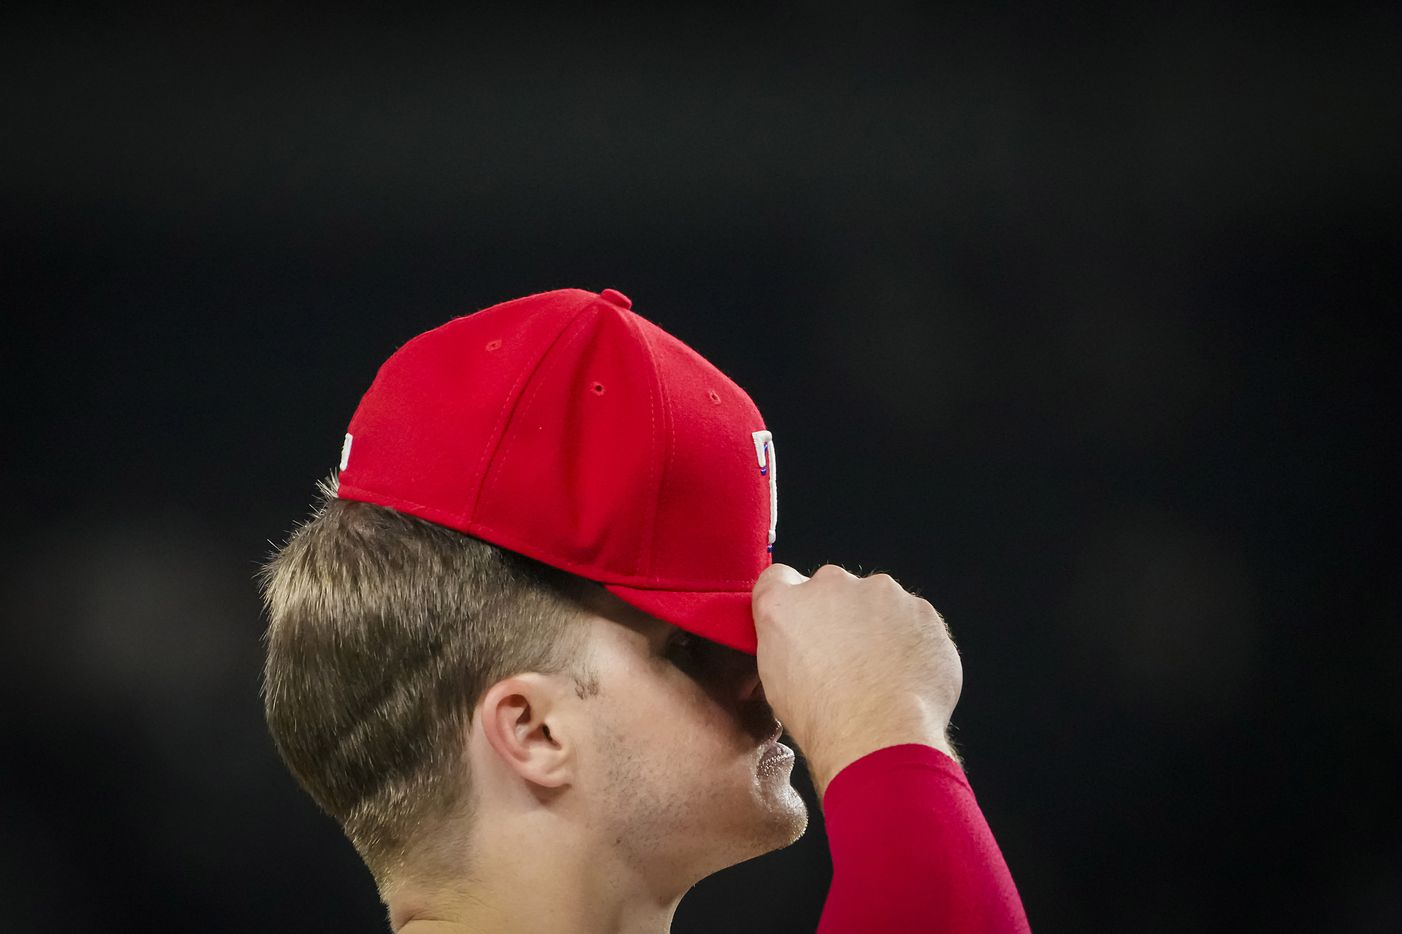 Texas Rangers third baseman Brock Holt adjusts his cap during the eighth inning against the Detroit Tigers at Globe Life Field on Tuesday, July 6, 2021.